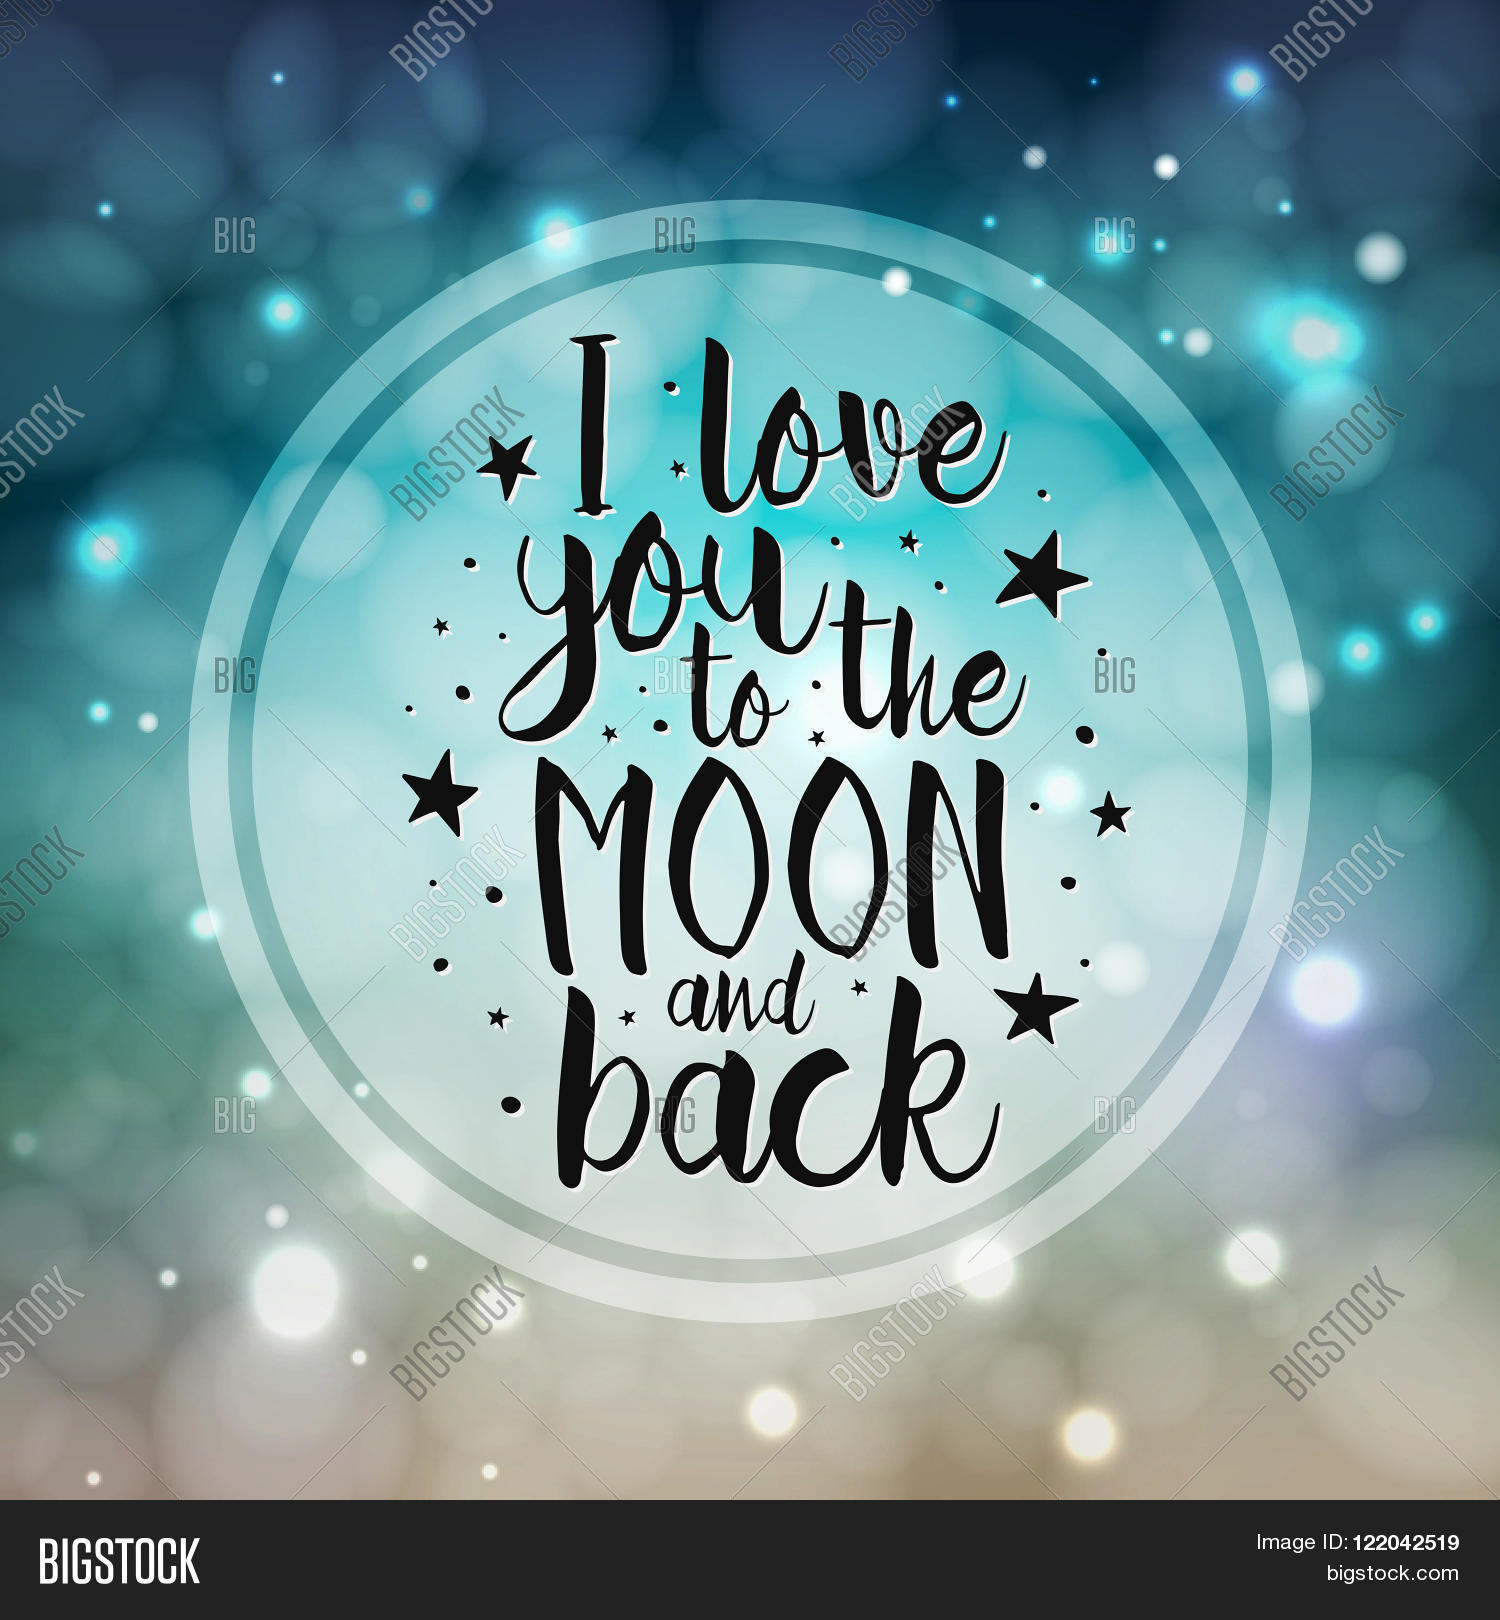 Quote I Love You To The Moon And Back Love You Moon Back  Vector Love Vector & Photo  Bigstock